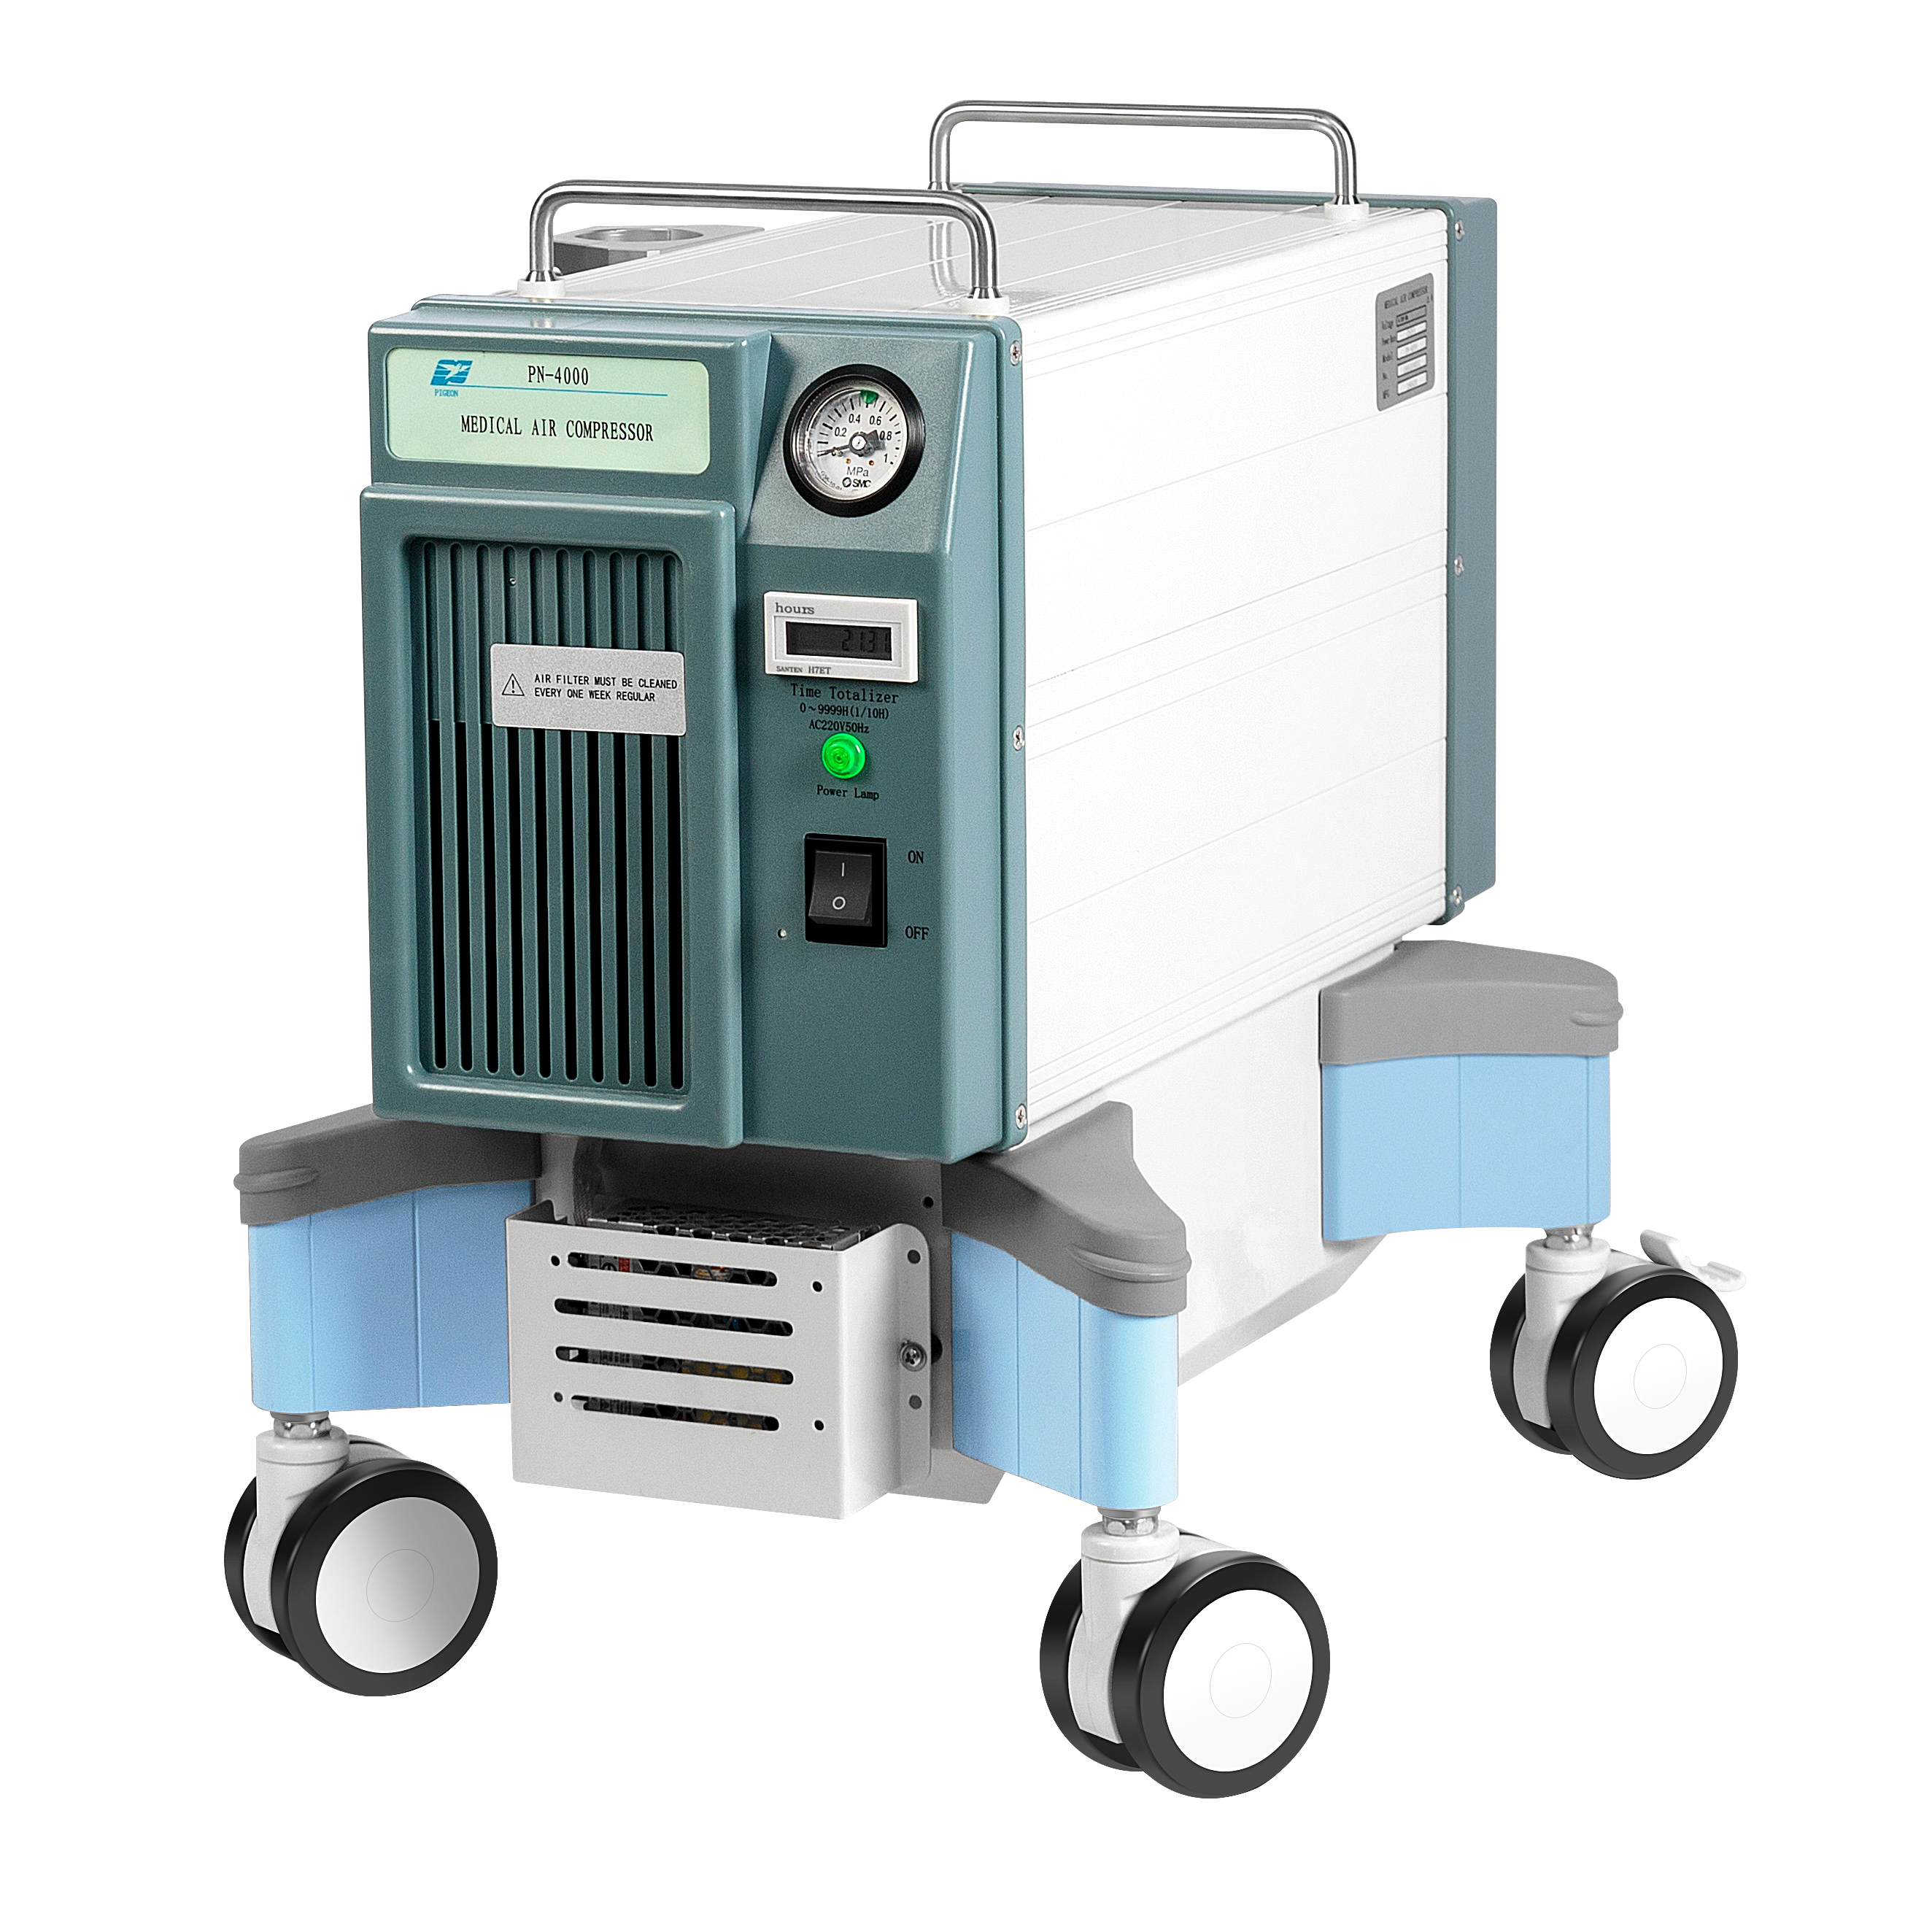 CE ISO Approved Super Silent Medical Compressor For Mechanical Ventilation Ventilators - KingCare | KingCare.net